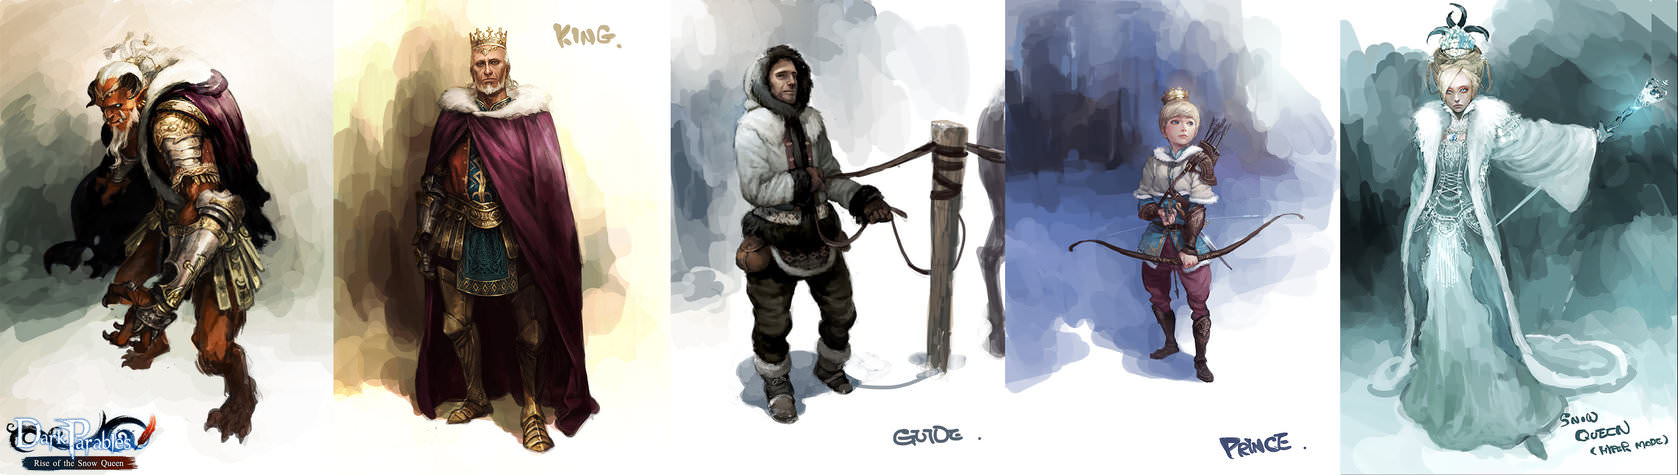 my_works_in_character_design_by_cellar_fcp-d5w9o2h